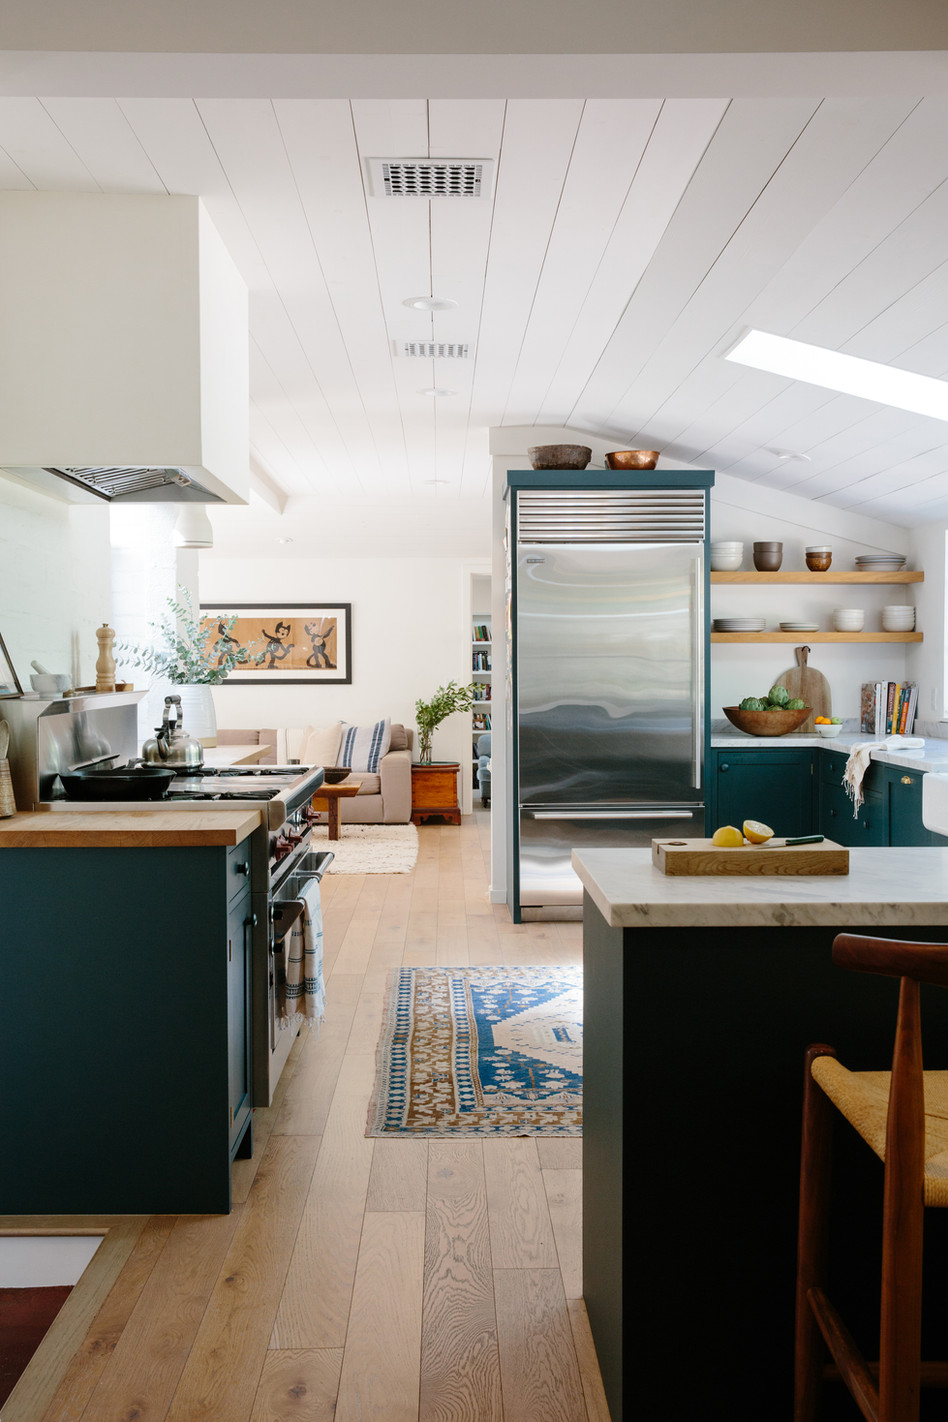 Dark kitchen cabinets in light and bright Ojai, Ca home by Lilly Walton Design